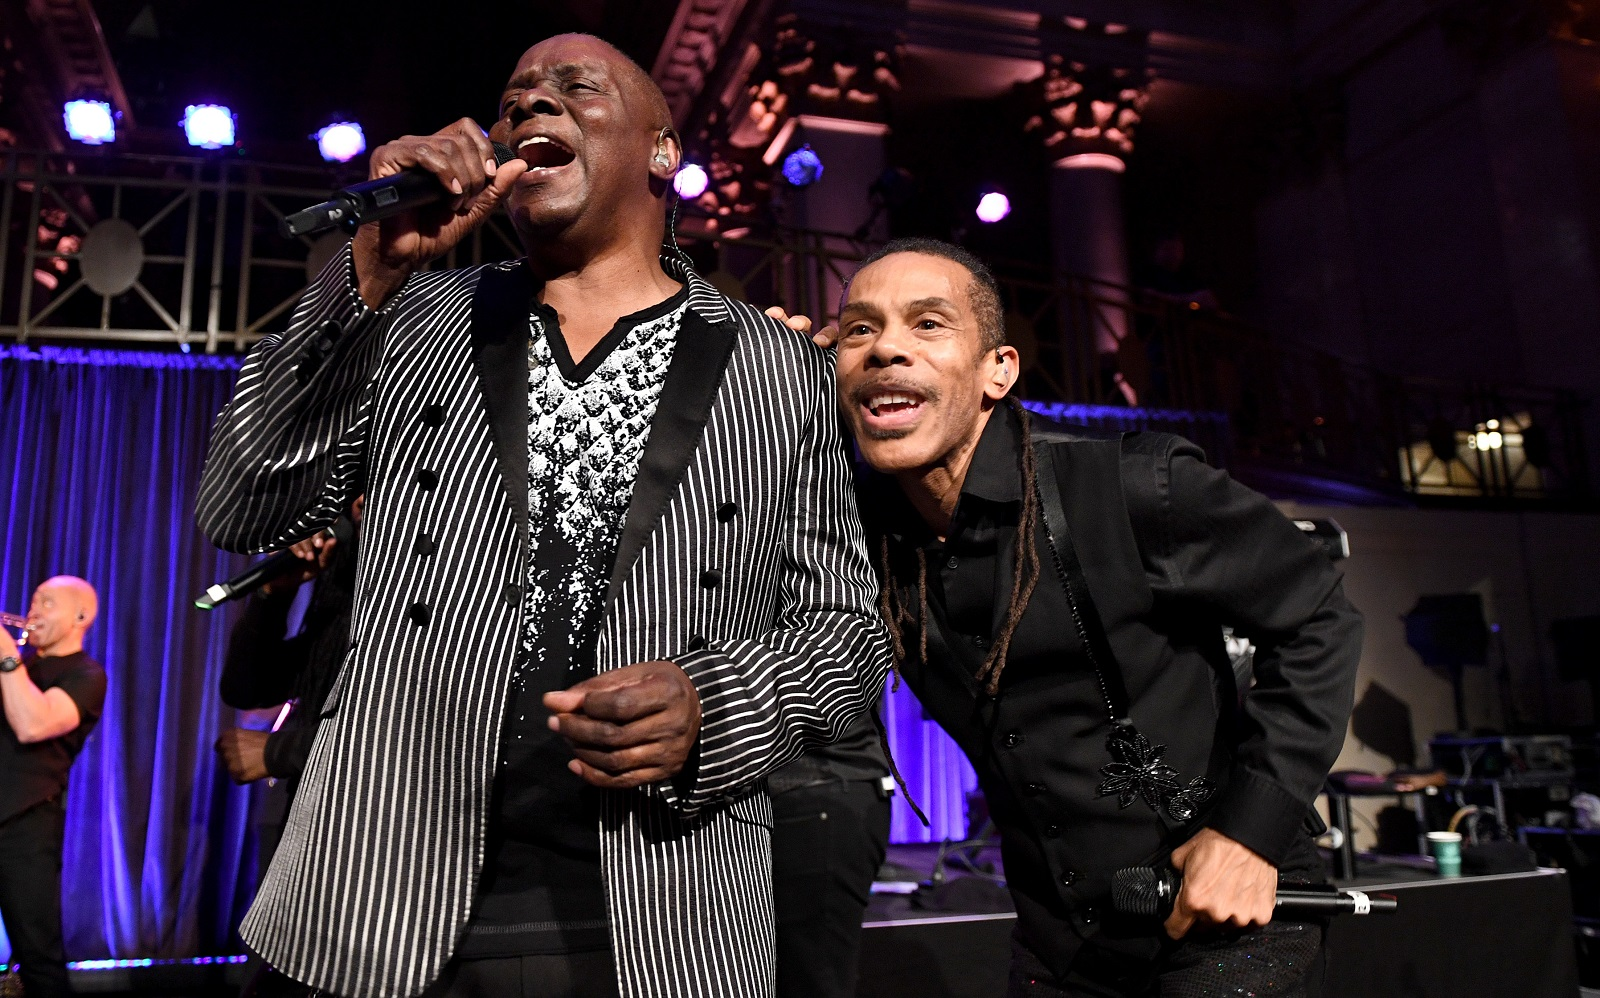 Philip Bailey, left, and his band Earth, Wind & Fire will perform in KeyBank Center this summer. (Getty Images)